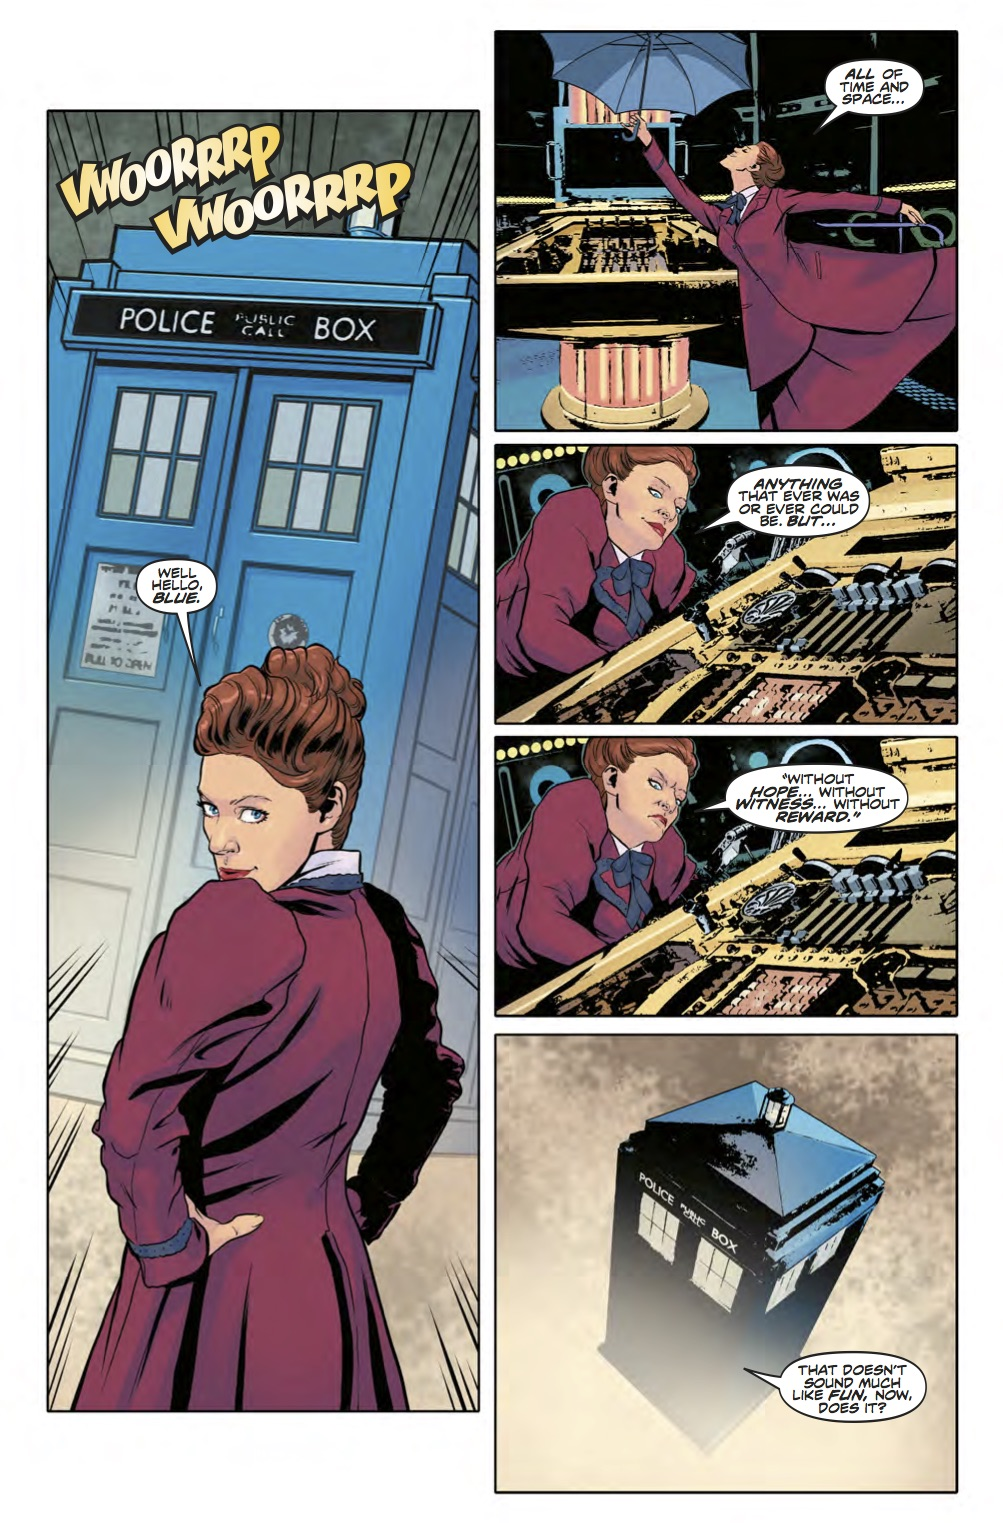 Doctor Who: Twelfth Doctor - Year Three #12 - Page 4 (Credit: Titan )